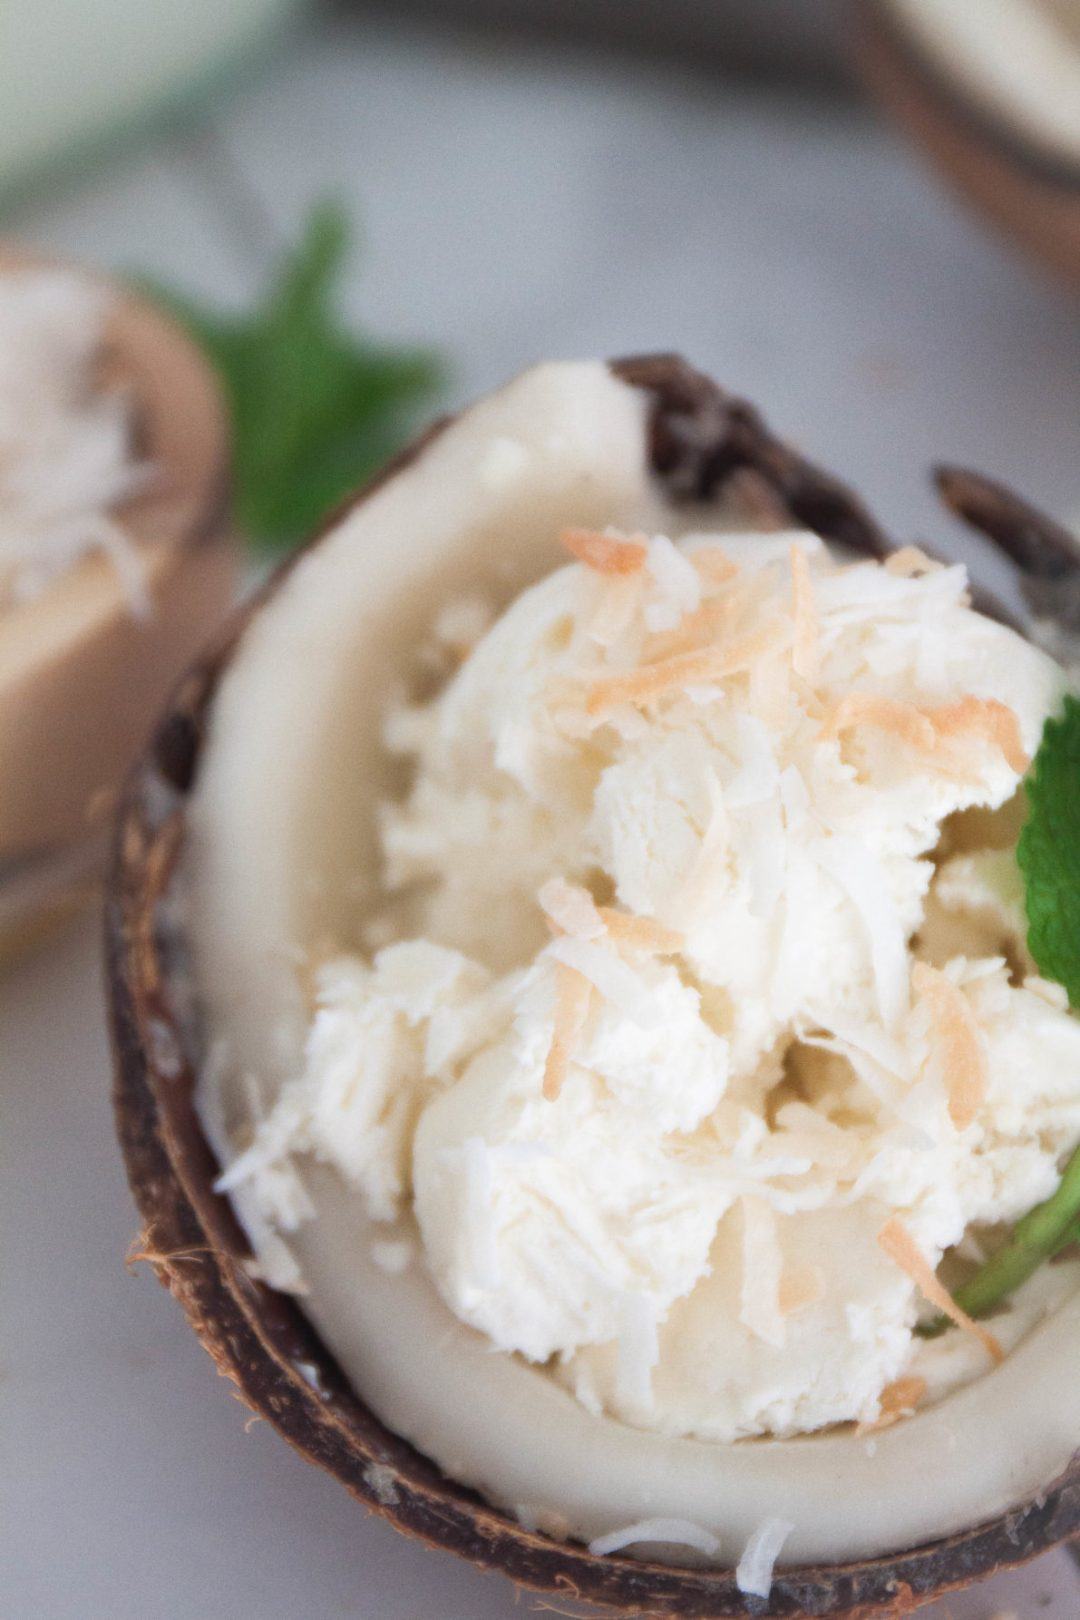 No Churn Creamy Coconut Ice Cream - Sweet, creamy, coconutty. This no churn coconut ice cream is simply delightful and is a cinch to make. And you don't even need to have an ice cream maker! | wanderzestblog.com